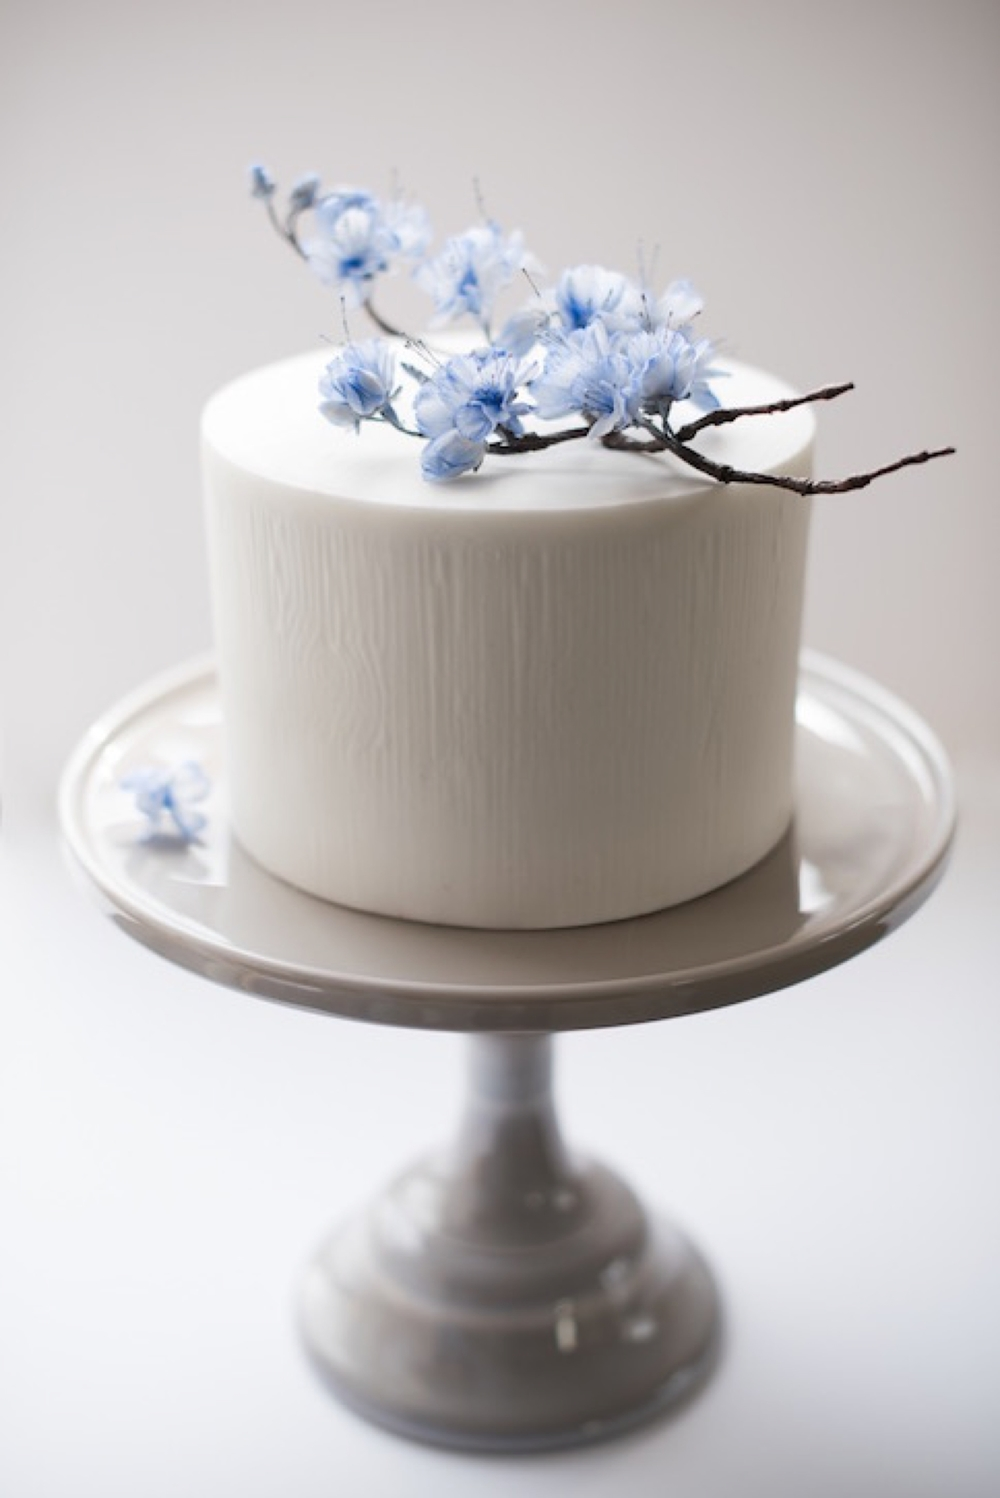 Making small wedding cakes beautiful sonnda catto braw brides i designed this cherry blossom wedding cake for an intimate springtime wedding it features a 6 inch round which serves approximately 20 people junglespirit